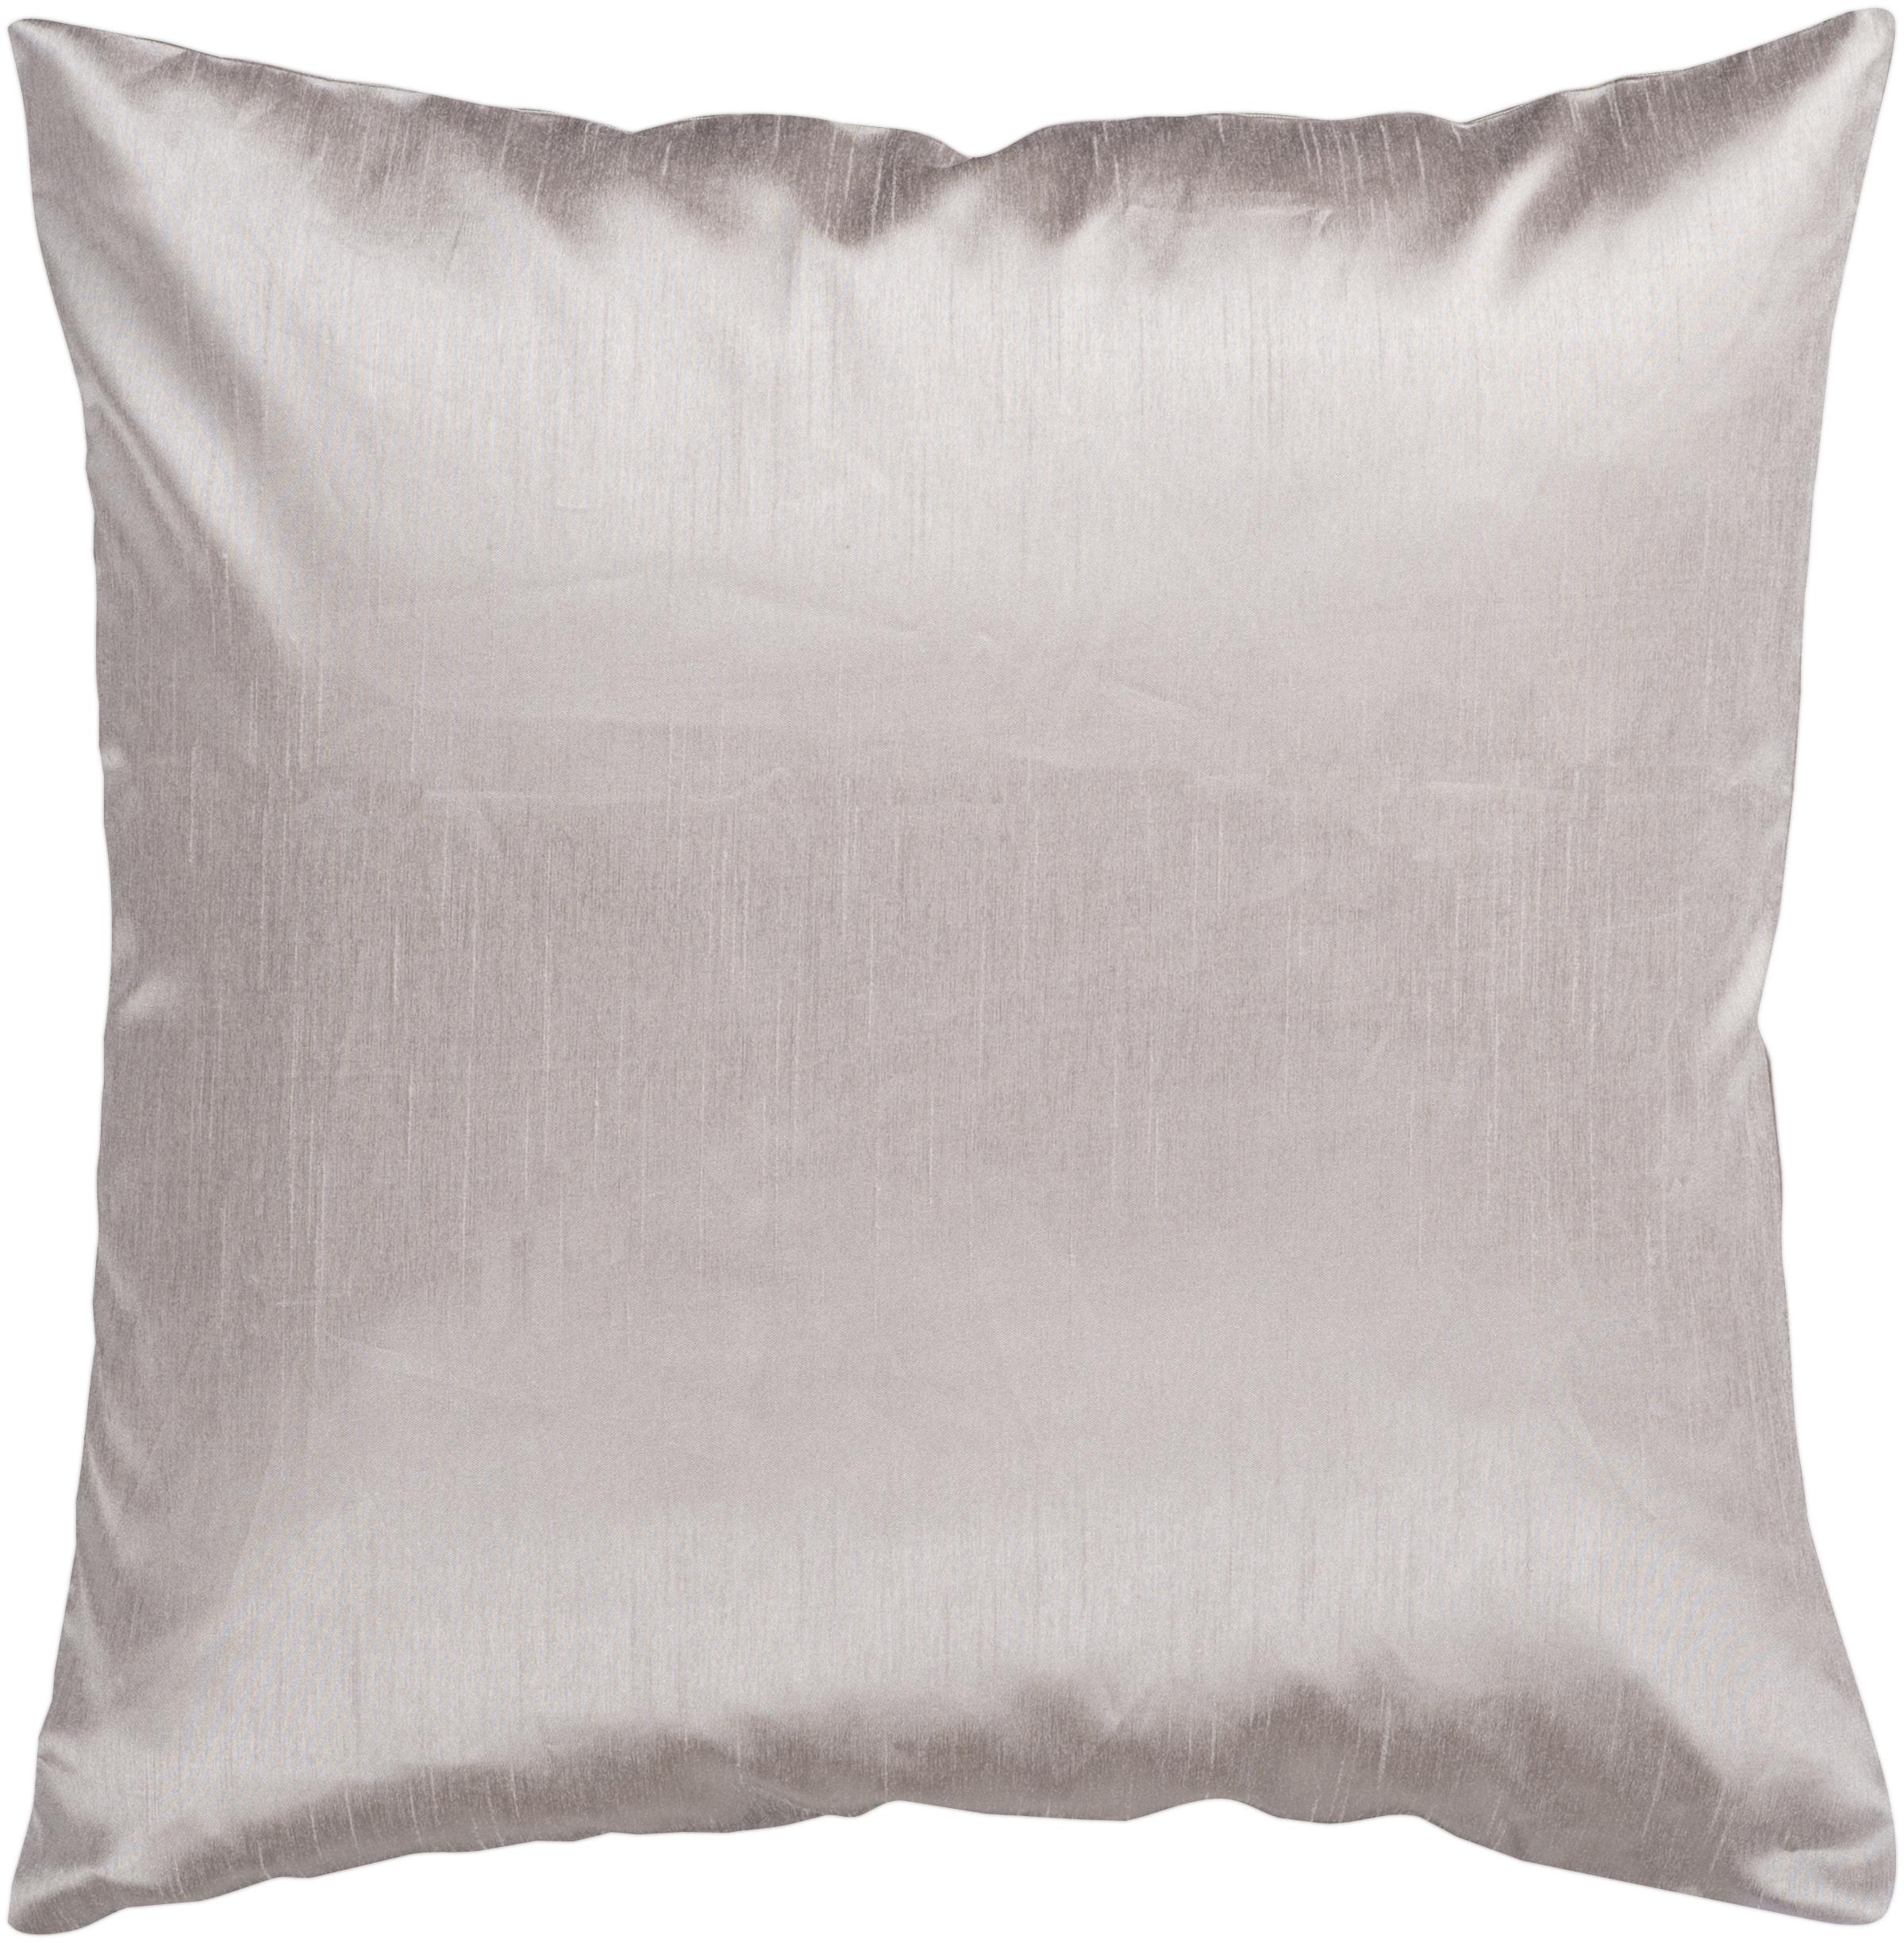 """Pillows 22"""" x 22"""" Pillow by Surya at Upper Room Home Furnishings"""